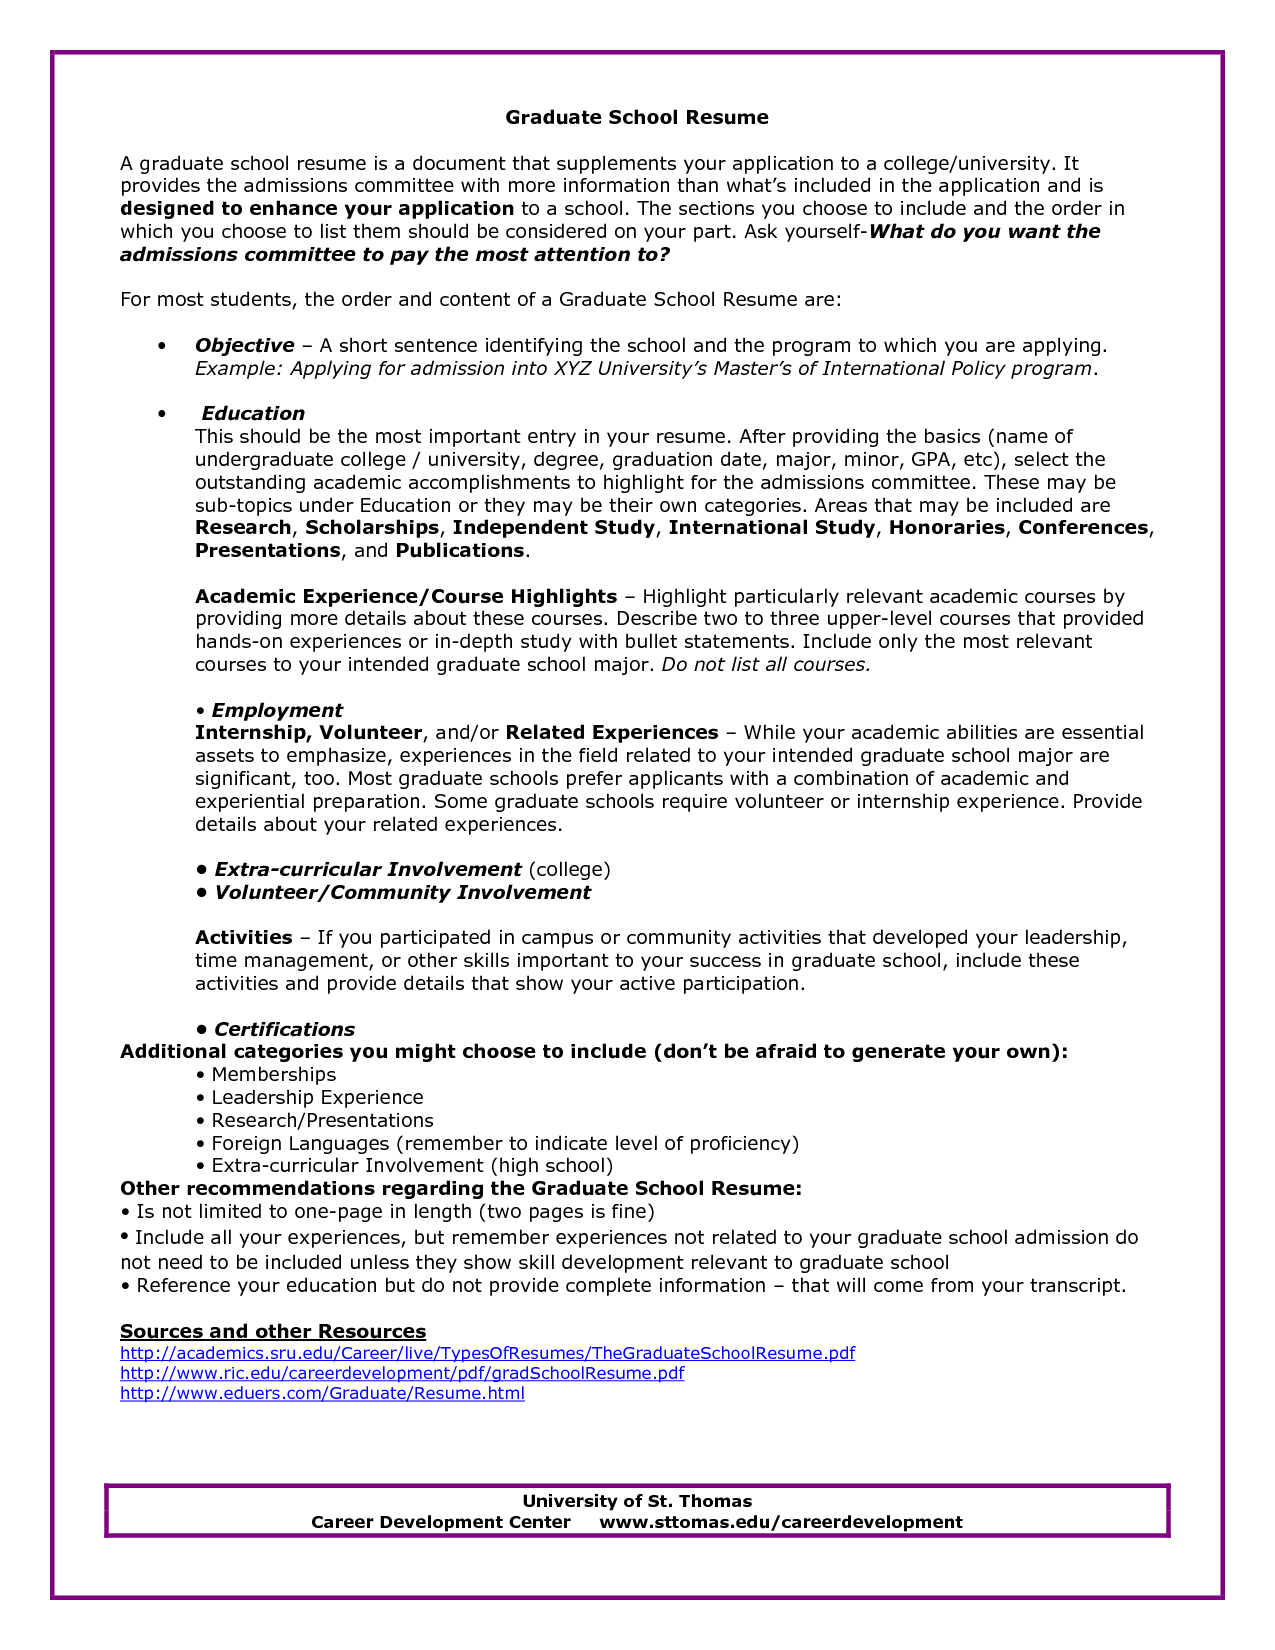 Graduate School Admissions Resume Sample Resumecareer